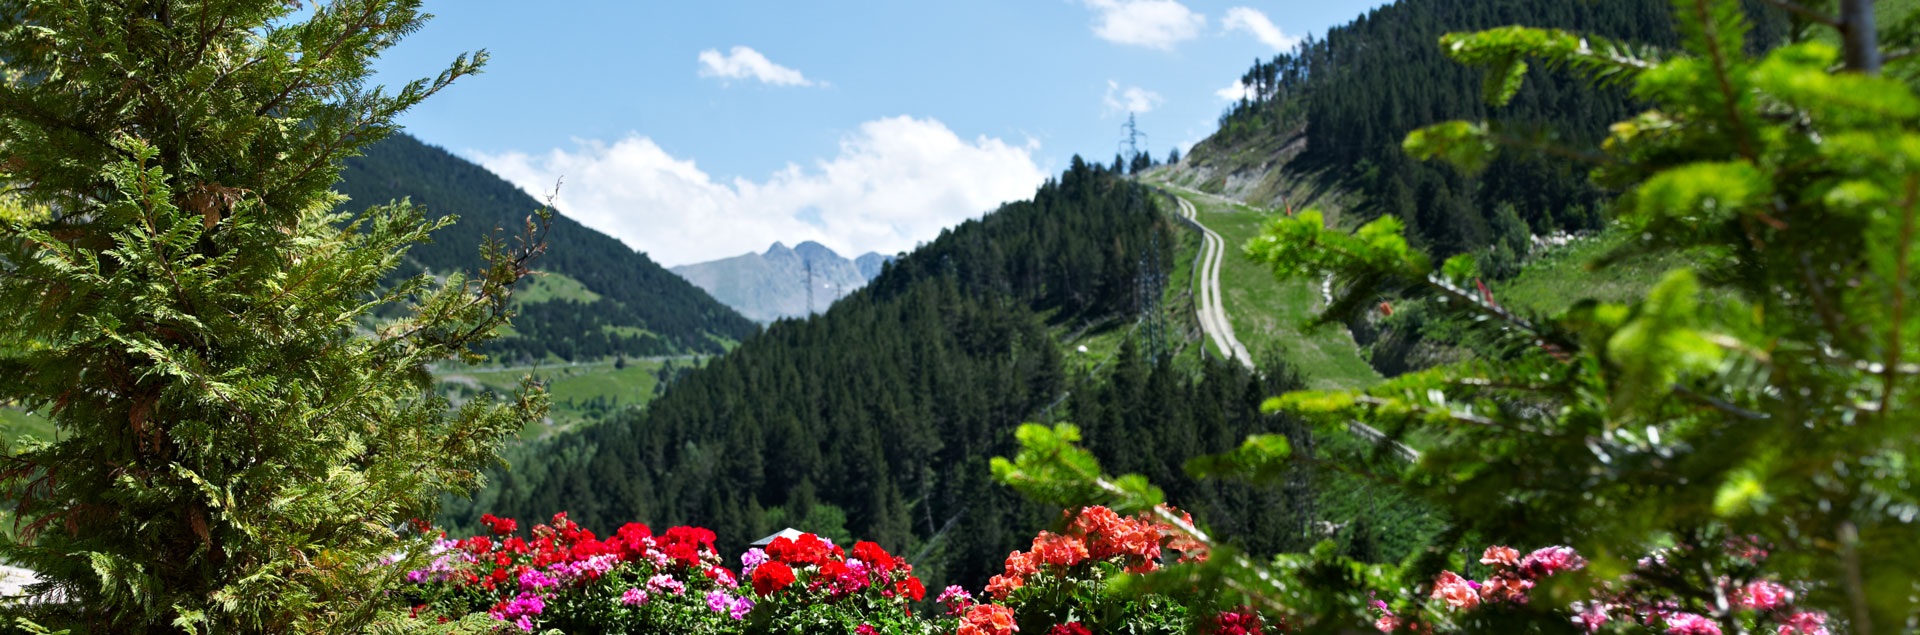 Andorra in summer, other history to discover